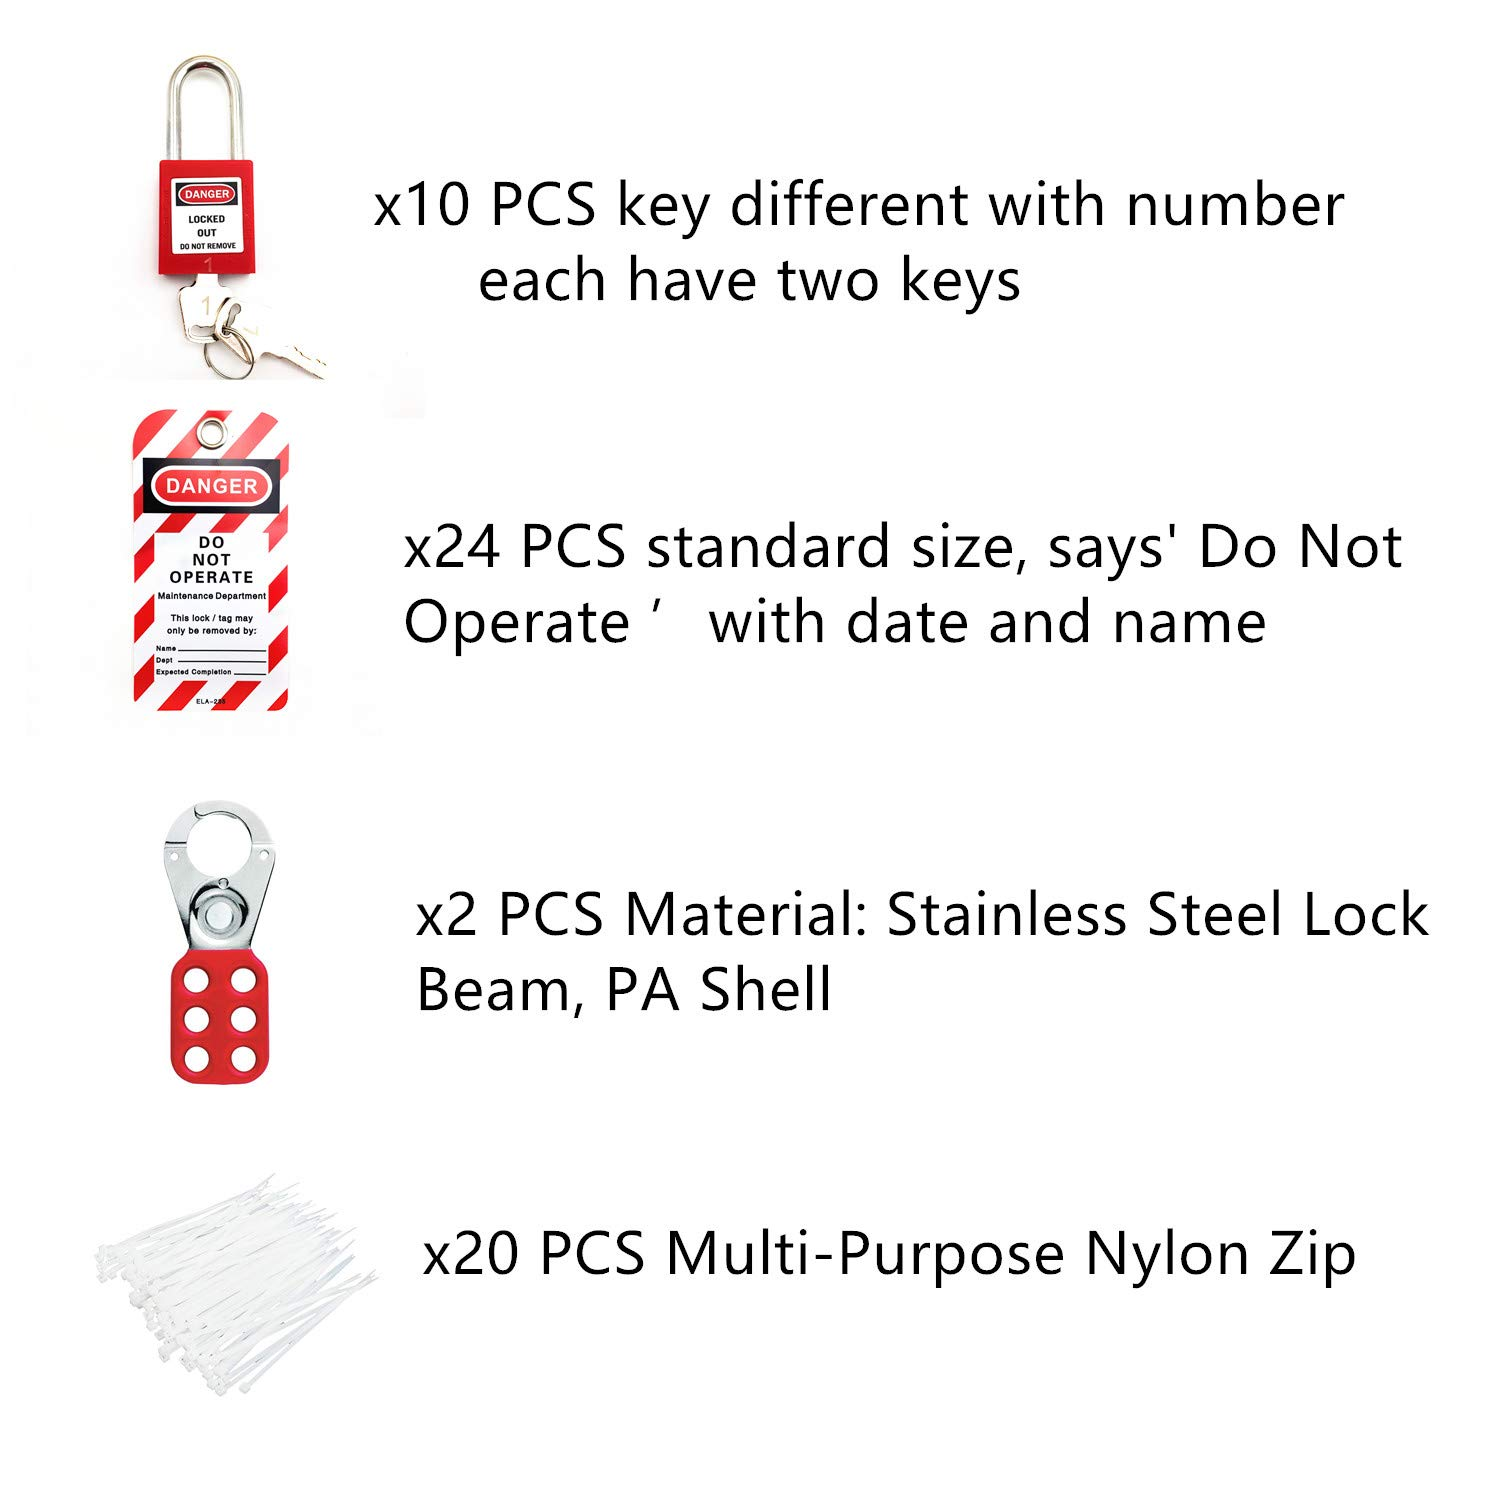 24 Lockout Tags 2 Lockout Hasps Includes 10 Key Different Padlocks with Numbers 20 Nylon Cable Lockout Tagout Station